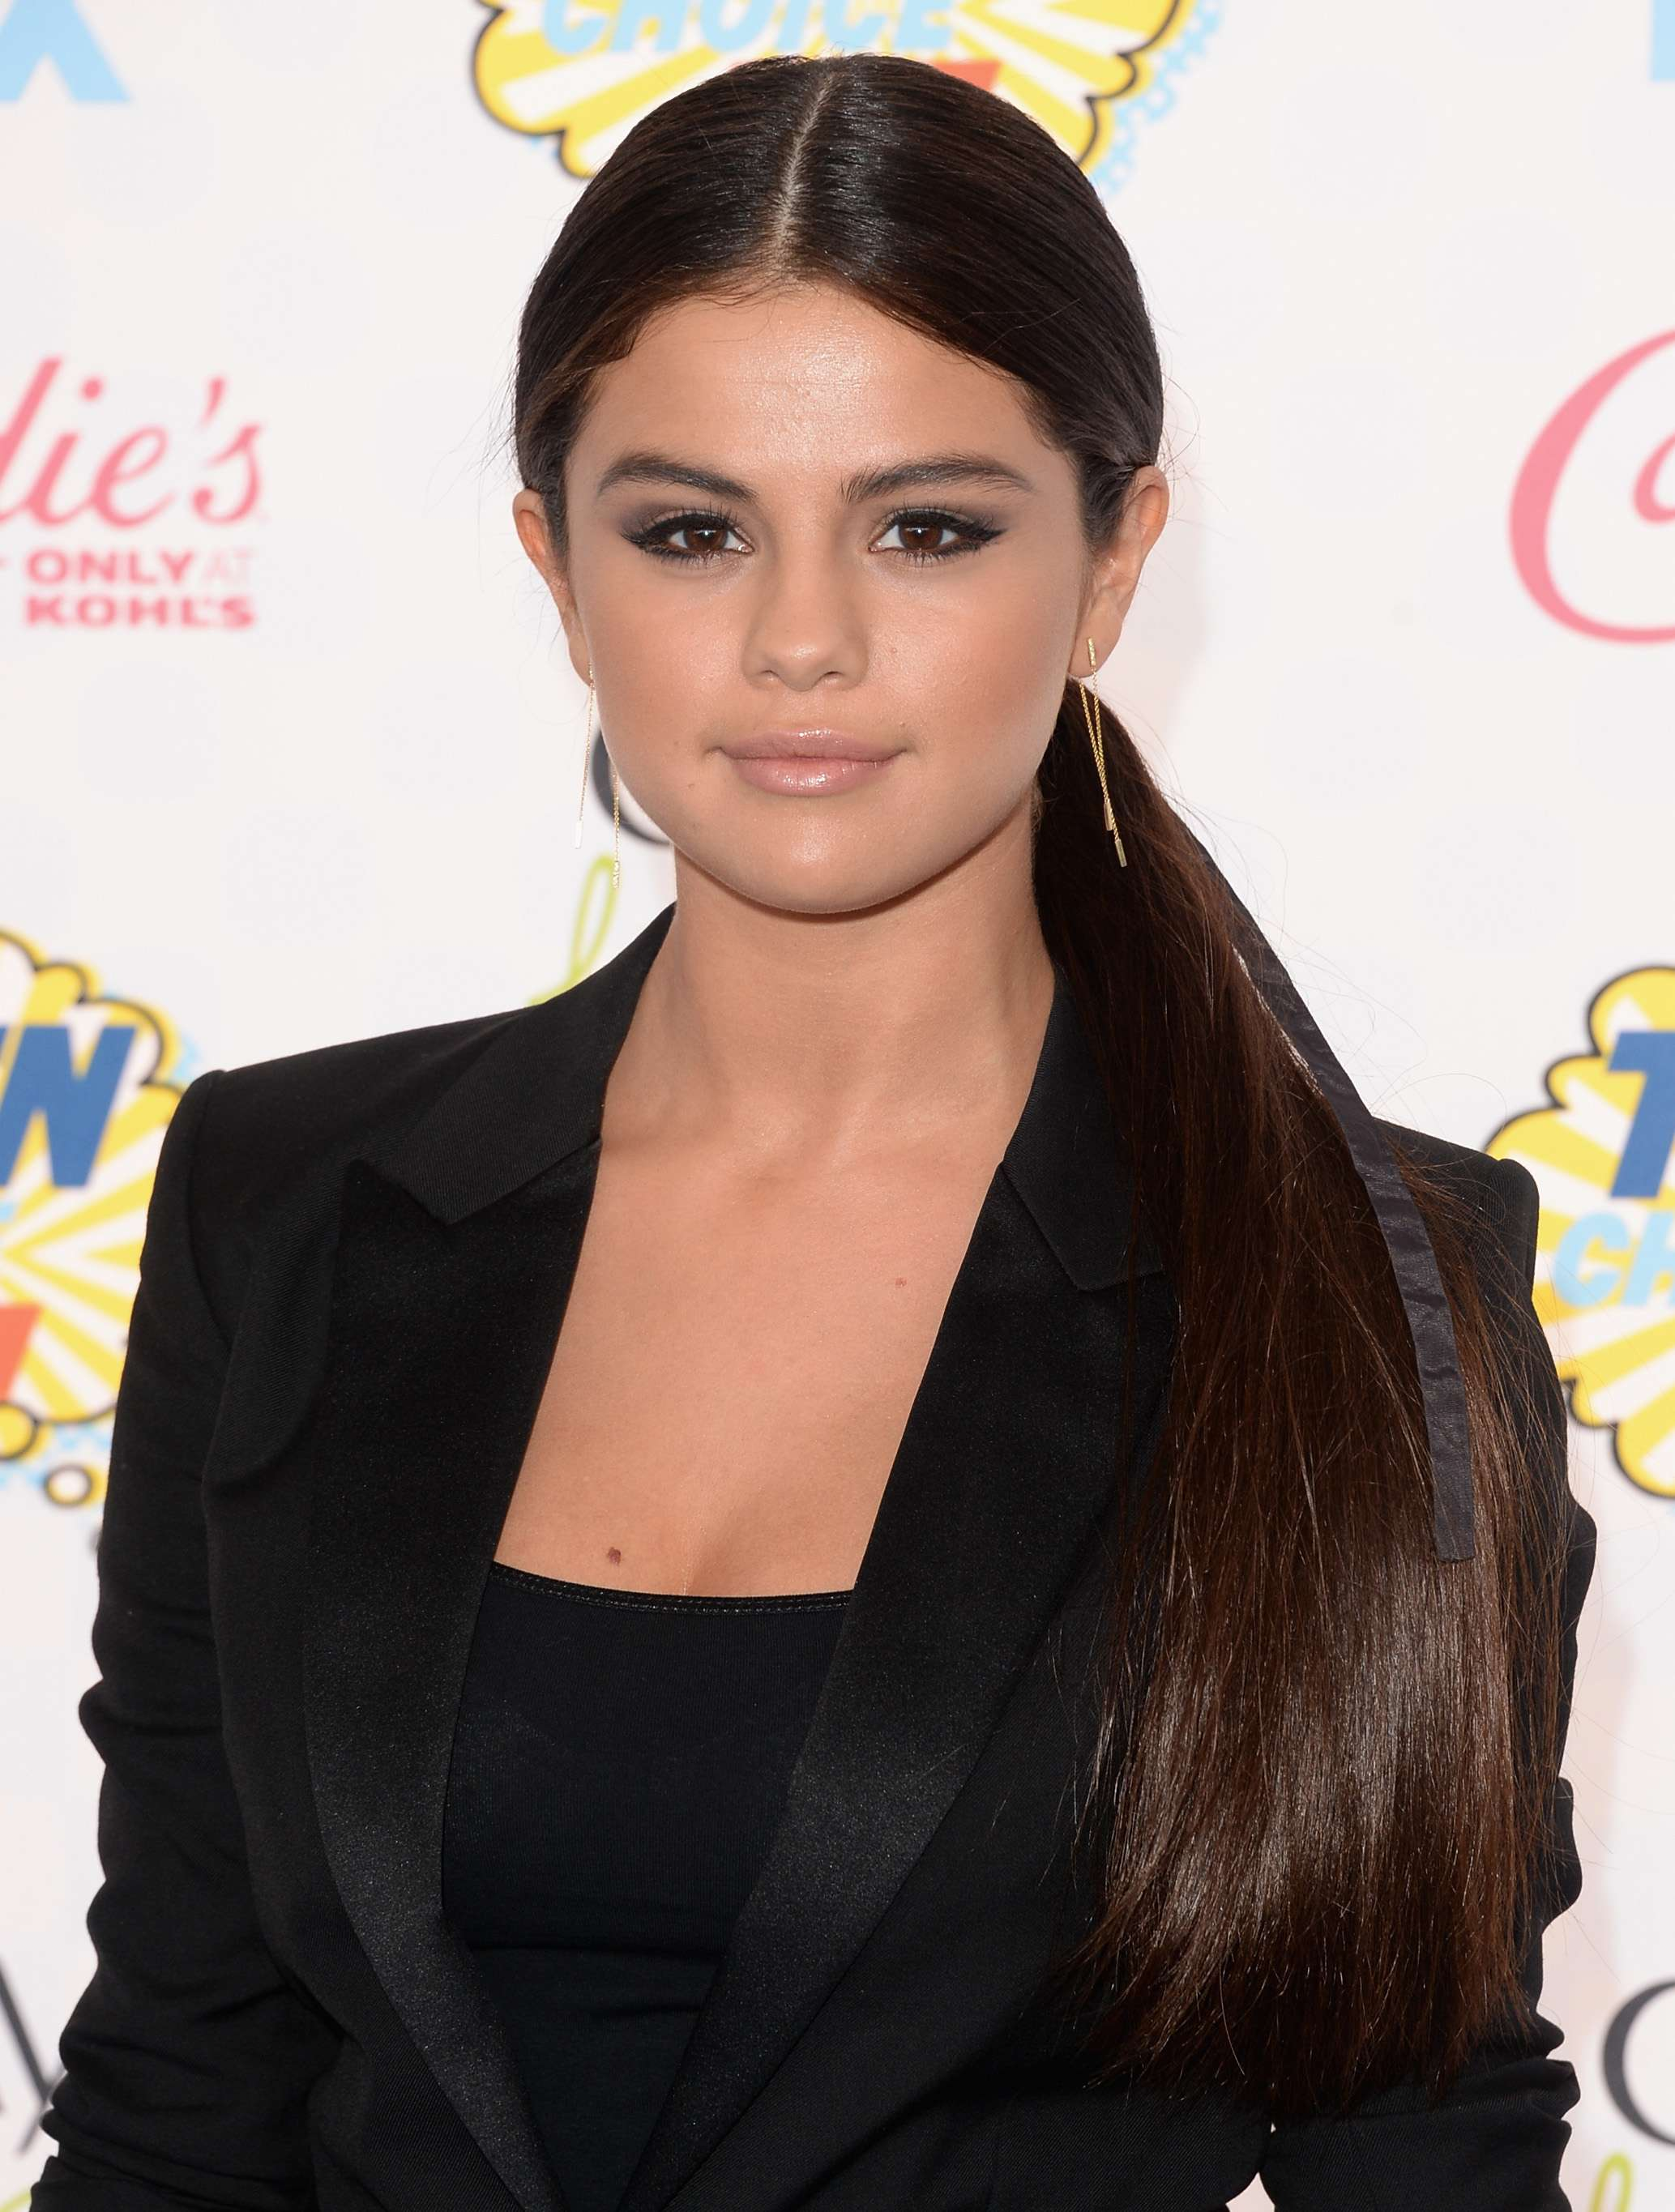 Copia el maquillaje de Selena Gomez Foto: Getty Images